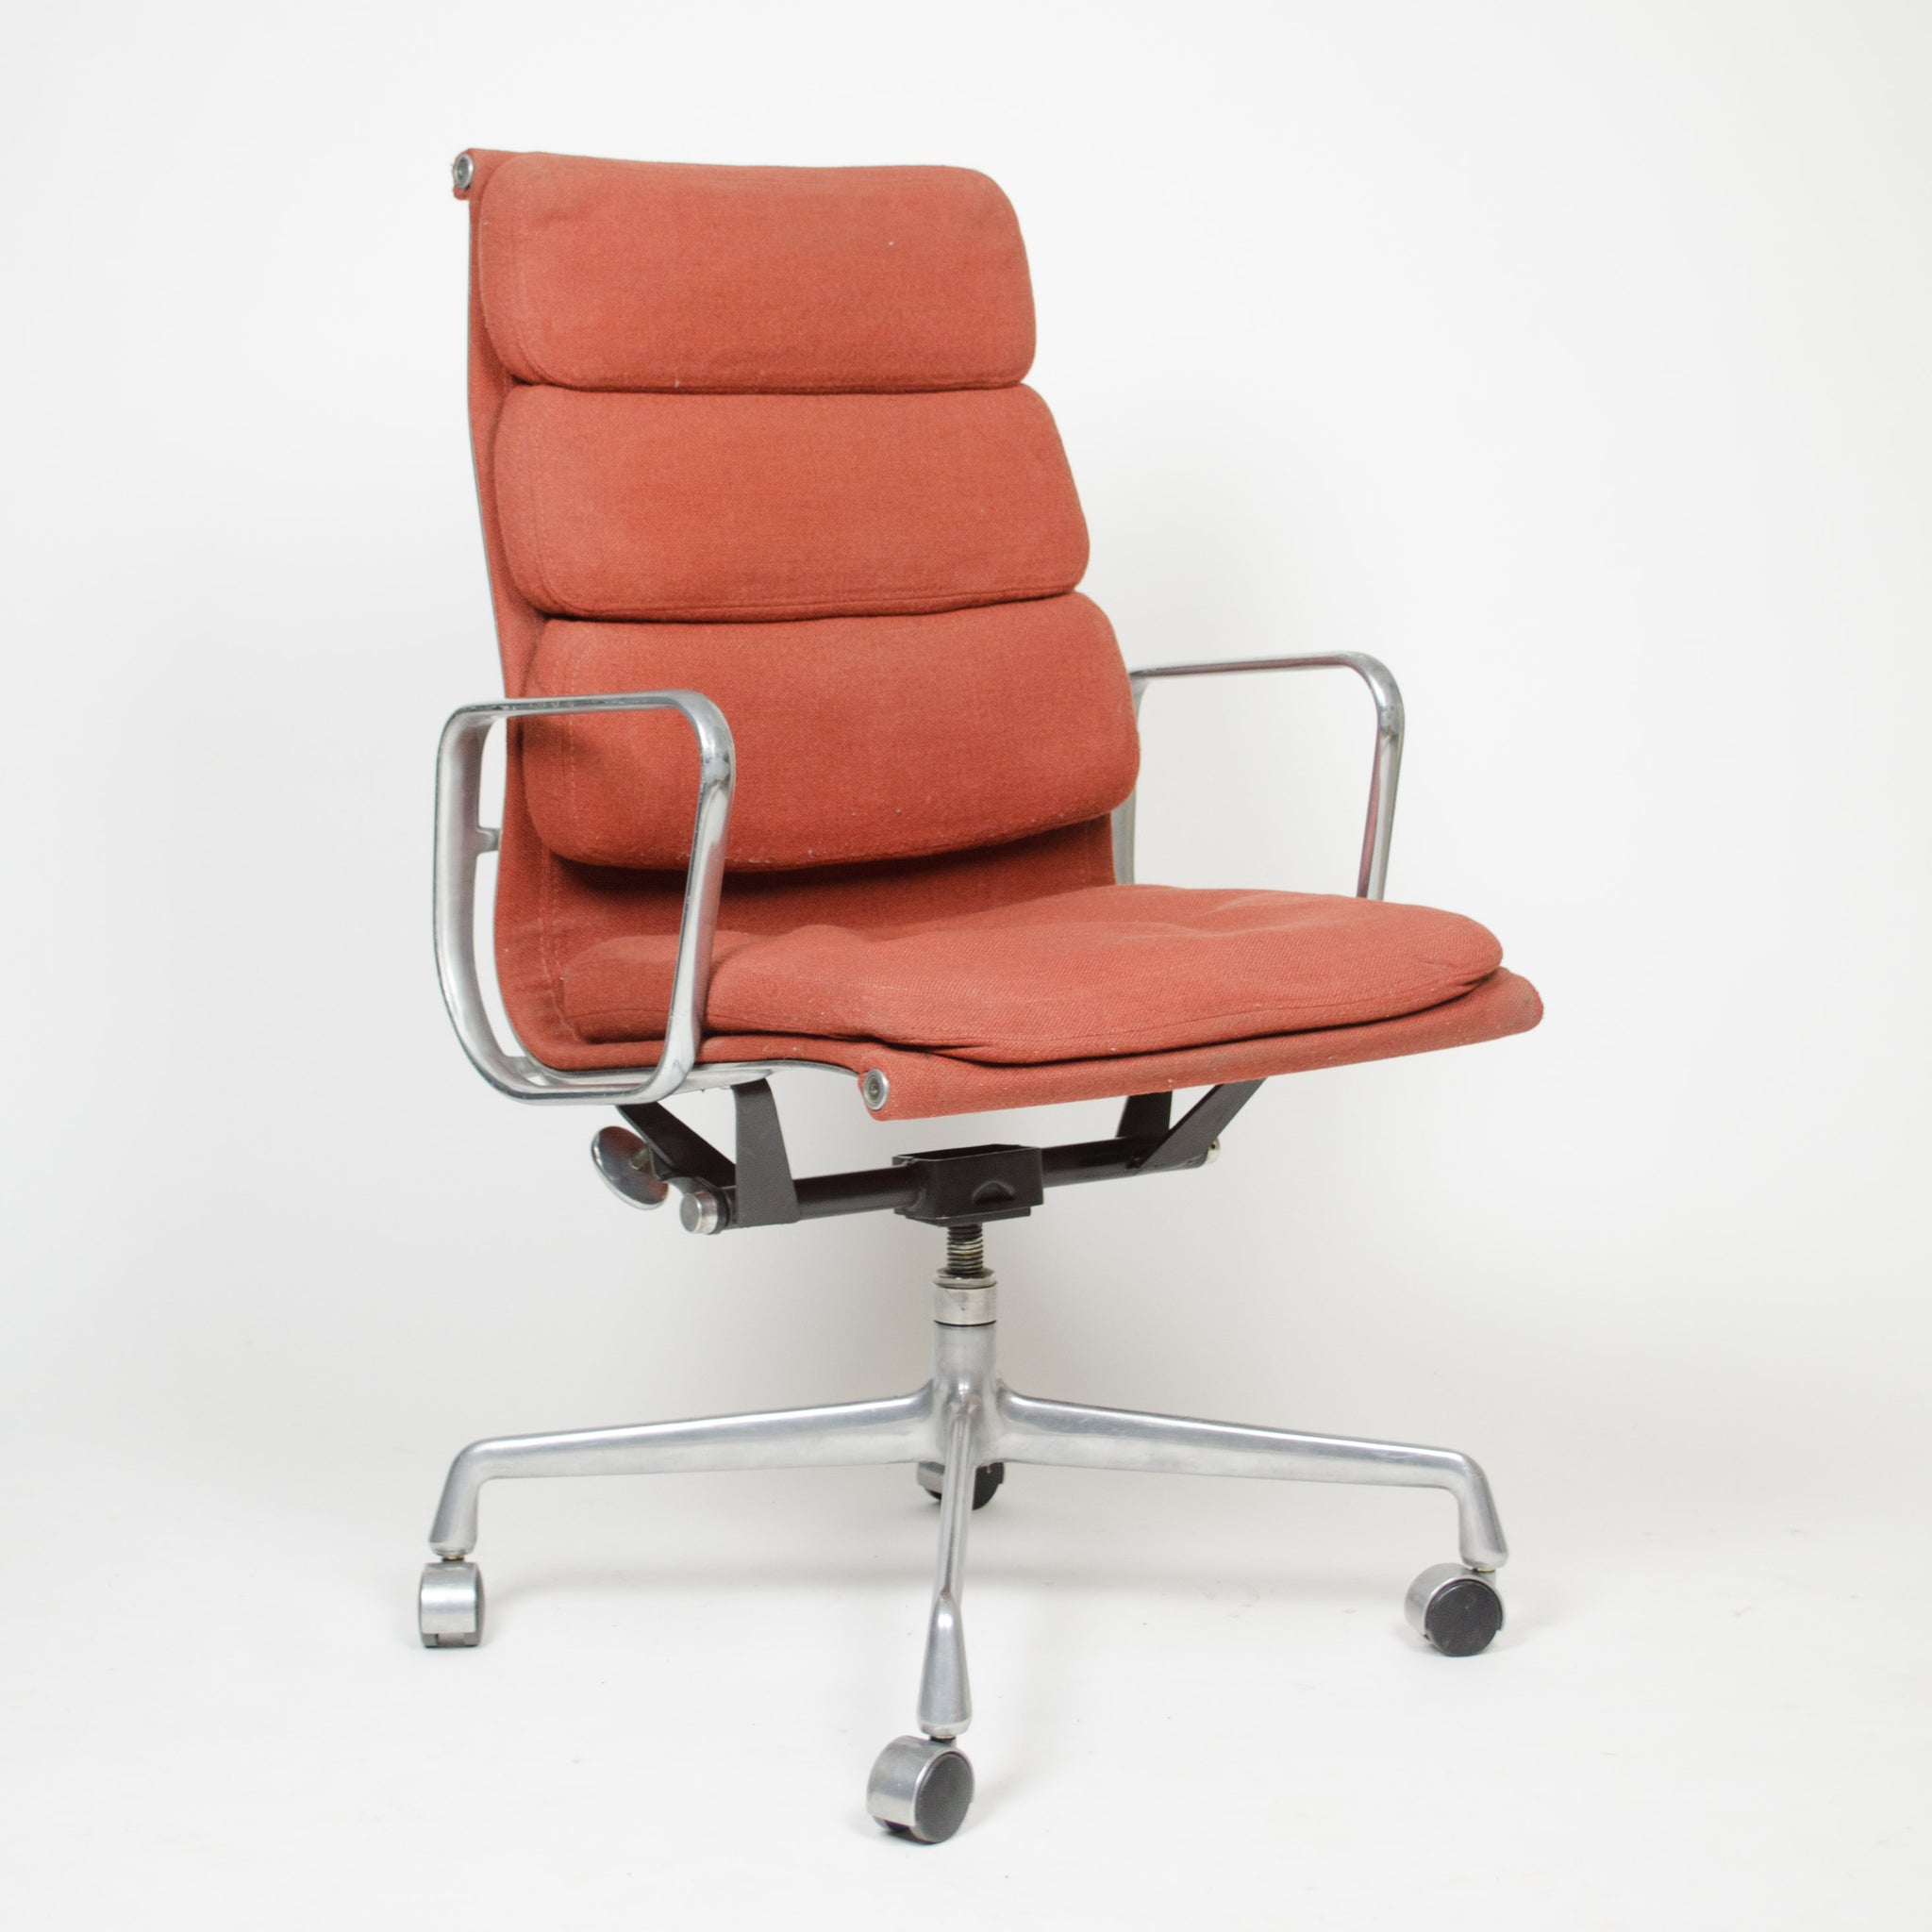 SOLD Fabric Eames Herman Miller High Back Soft Pad Aluminum Chair 1981